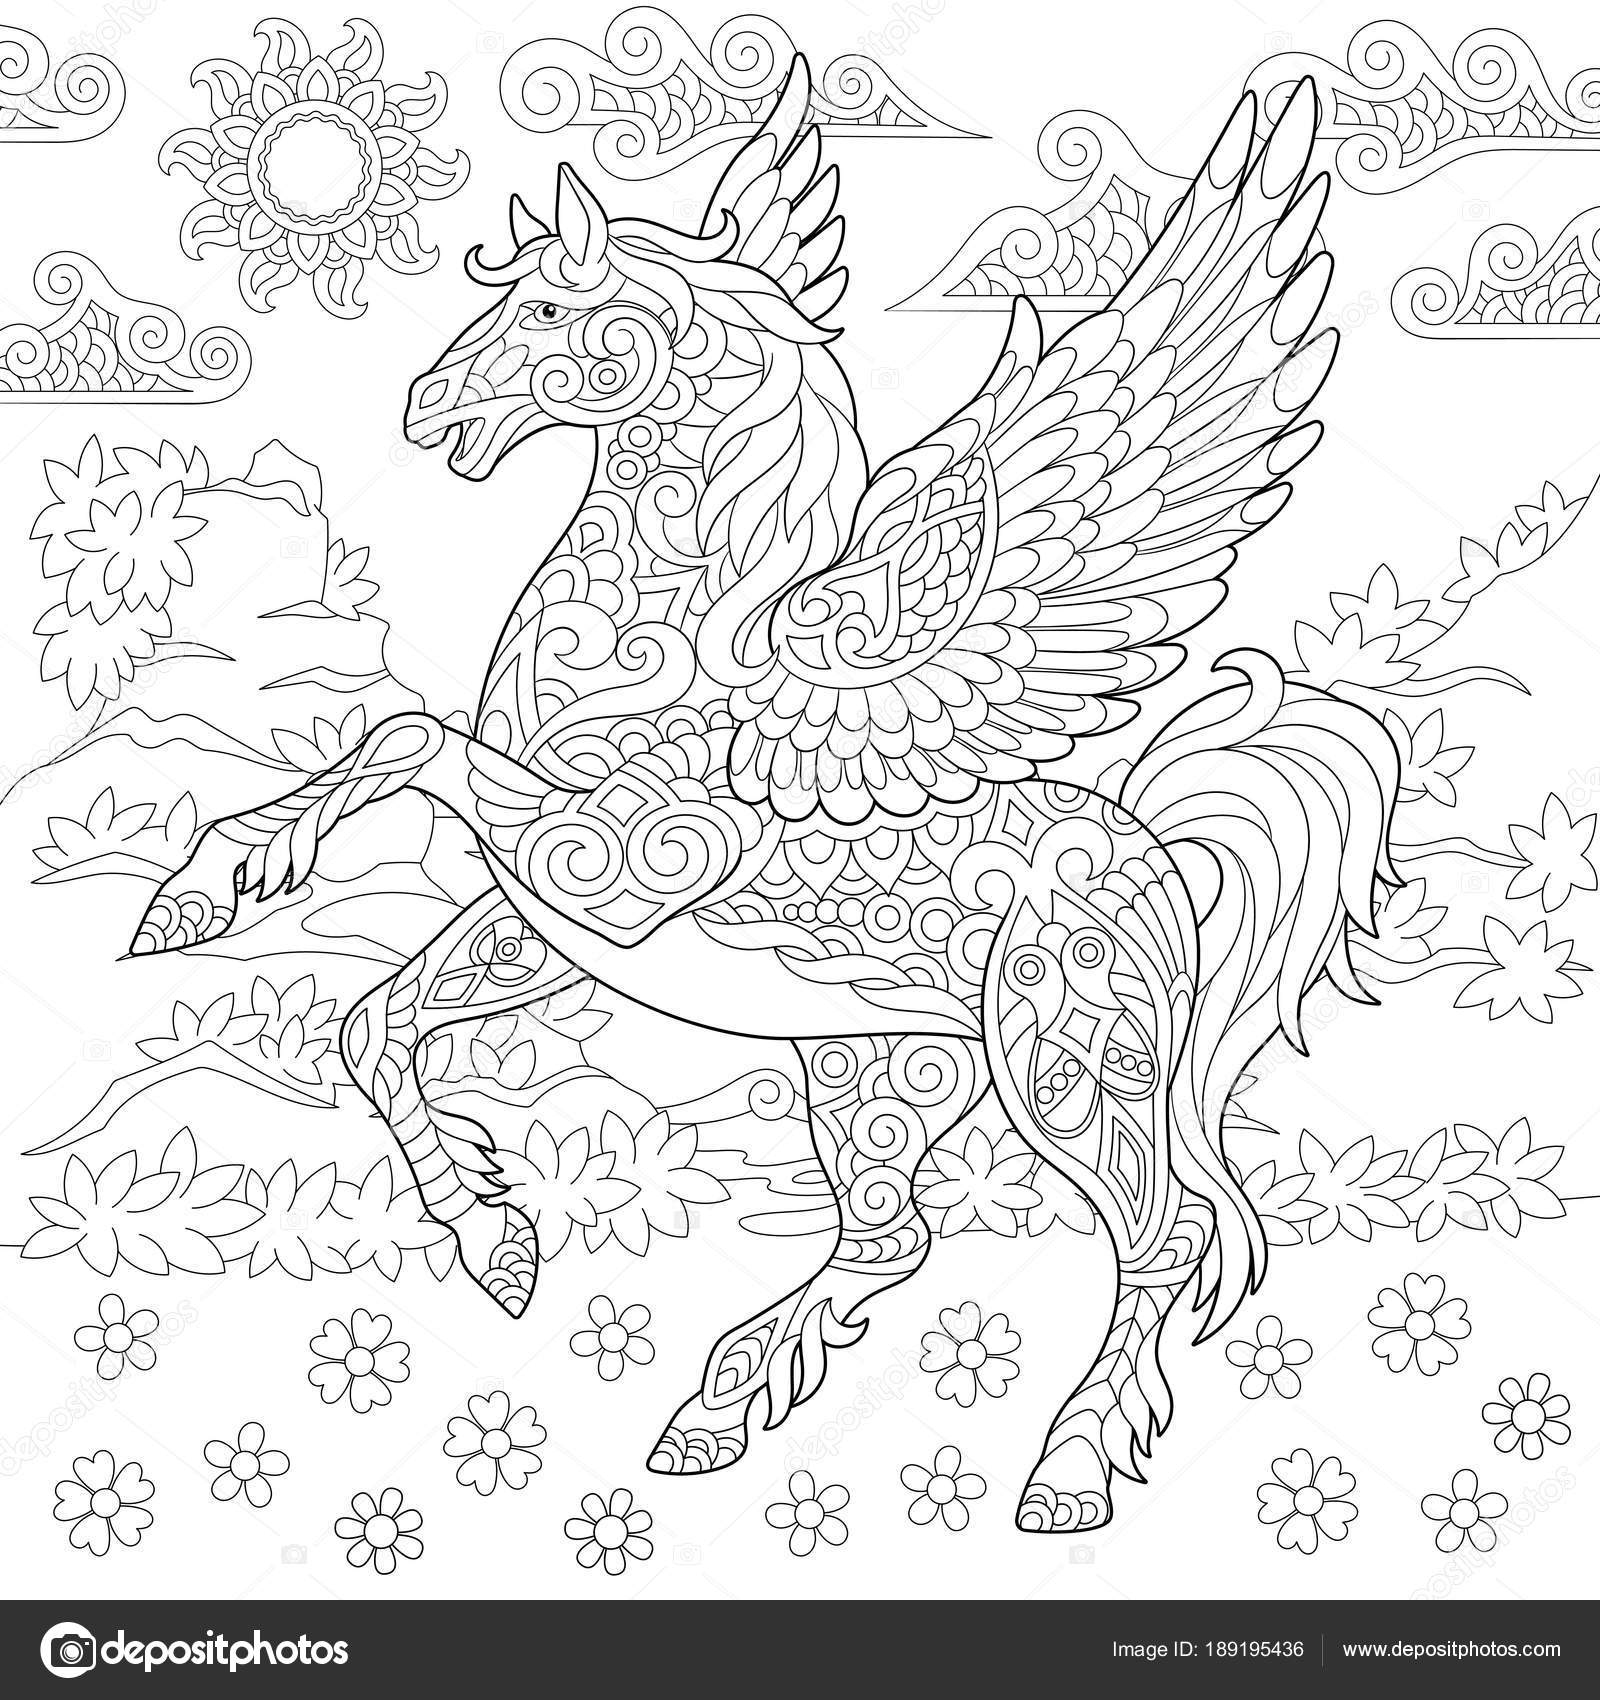 Pictures Pegasus Coloring Pages For Adults Zentangle Pegasus Horse Stock Vector C Sybirko 189195436